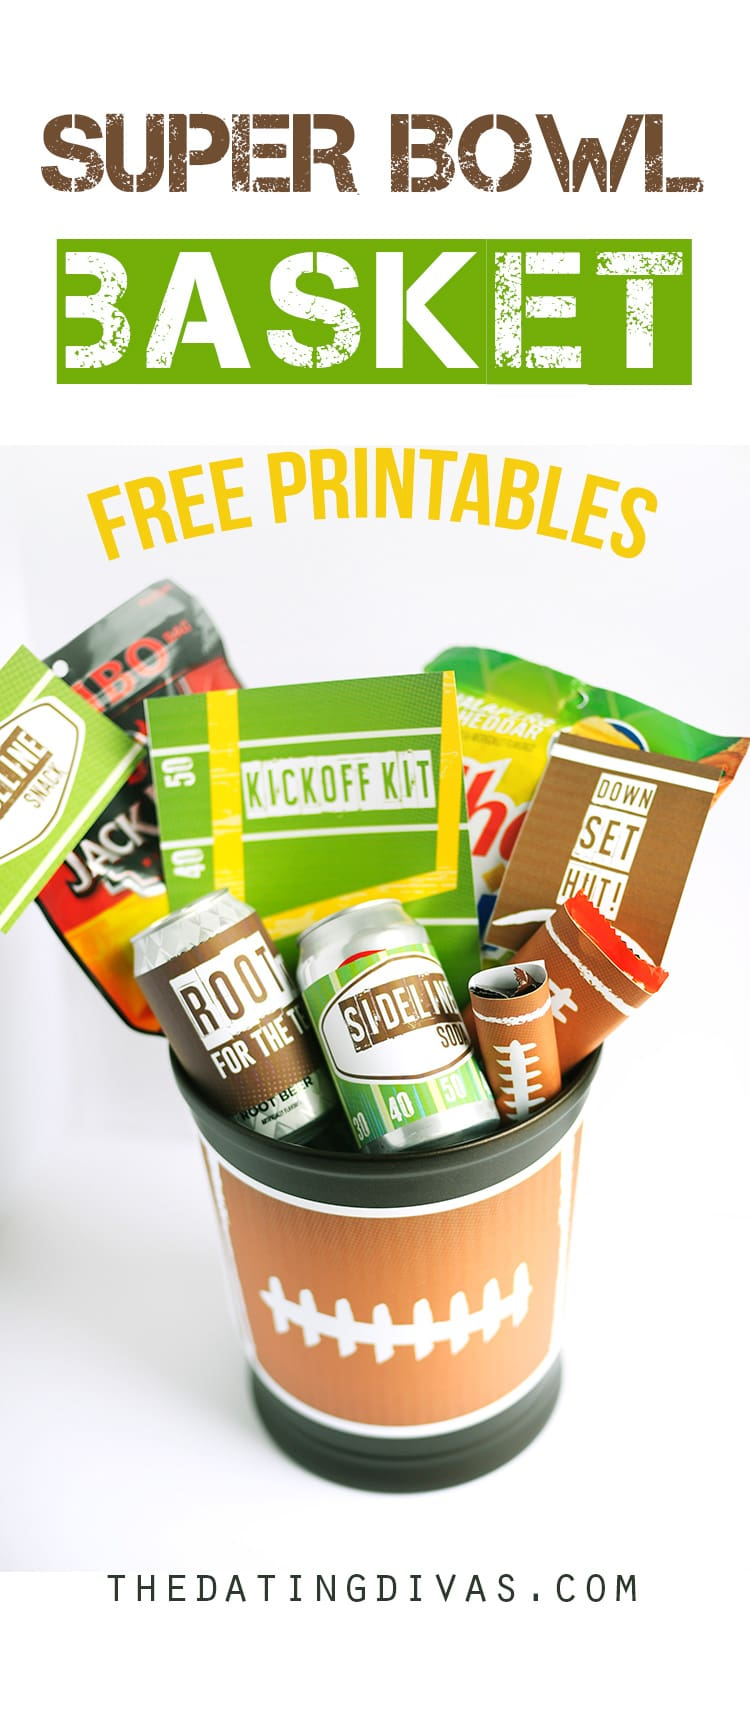 Super Bowl Basket Free Printables